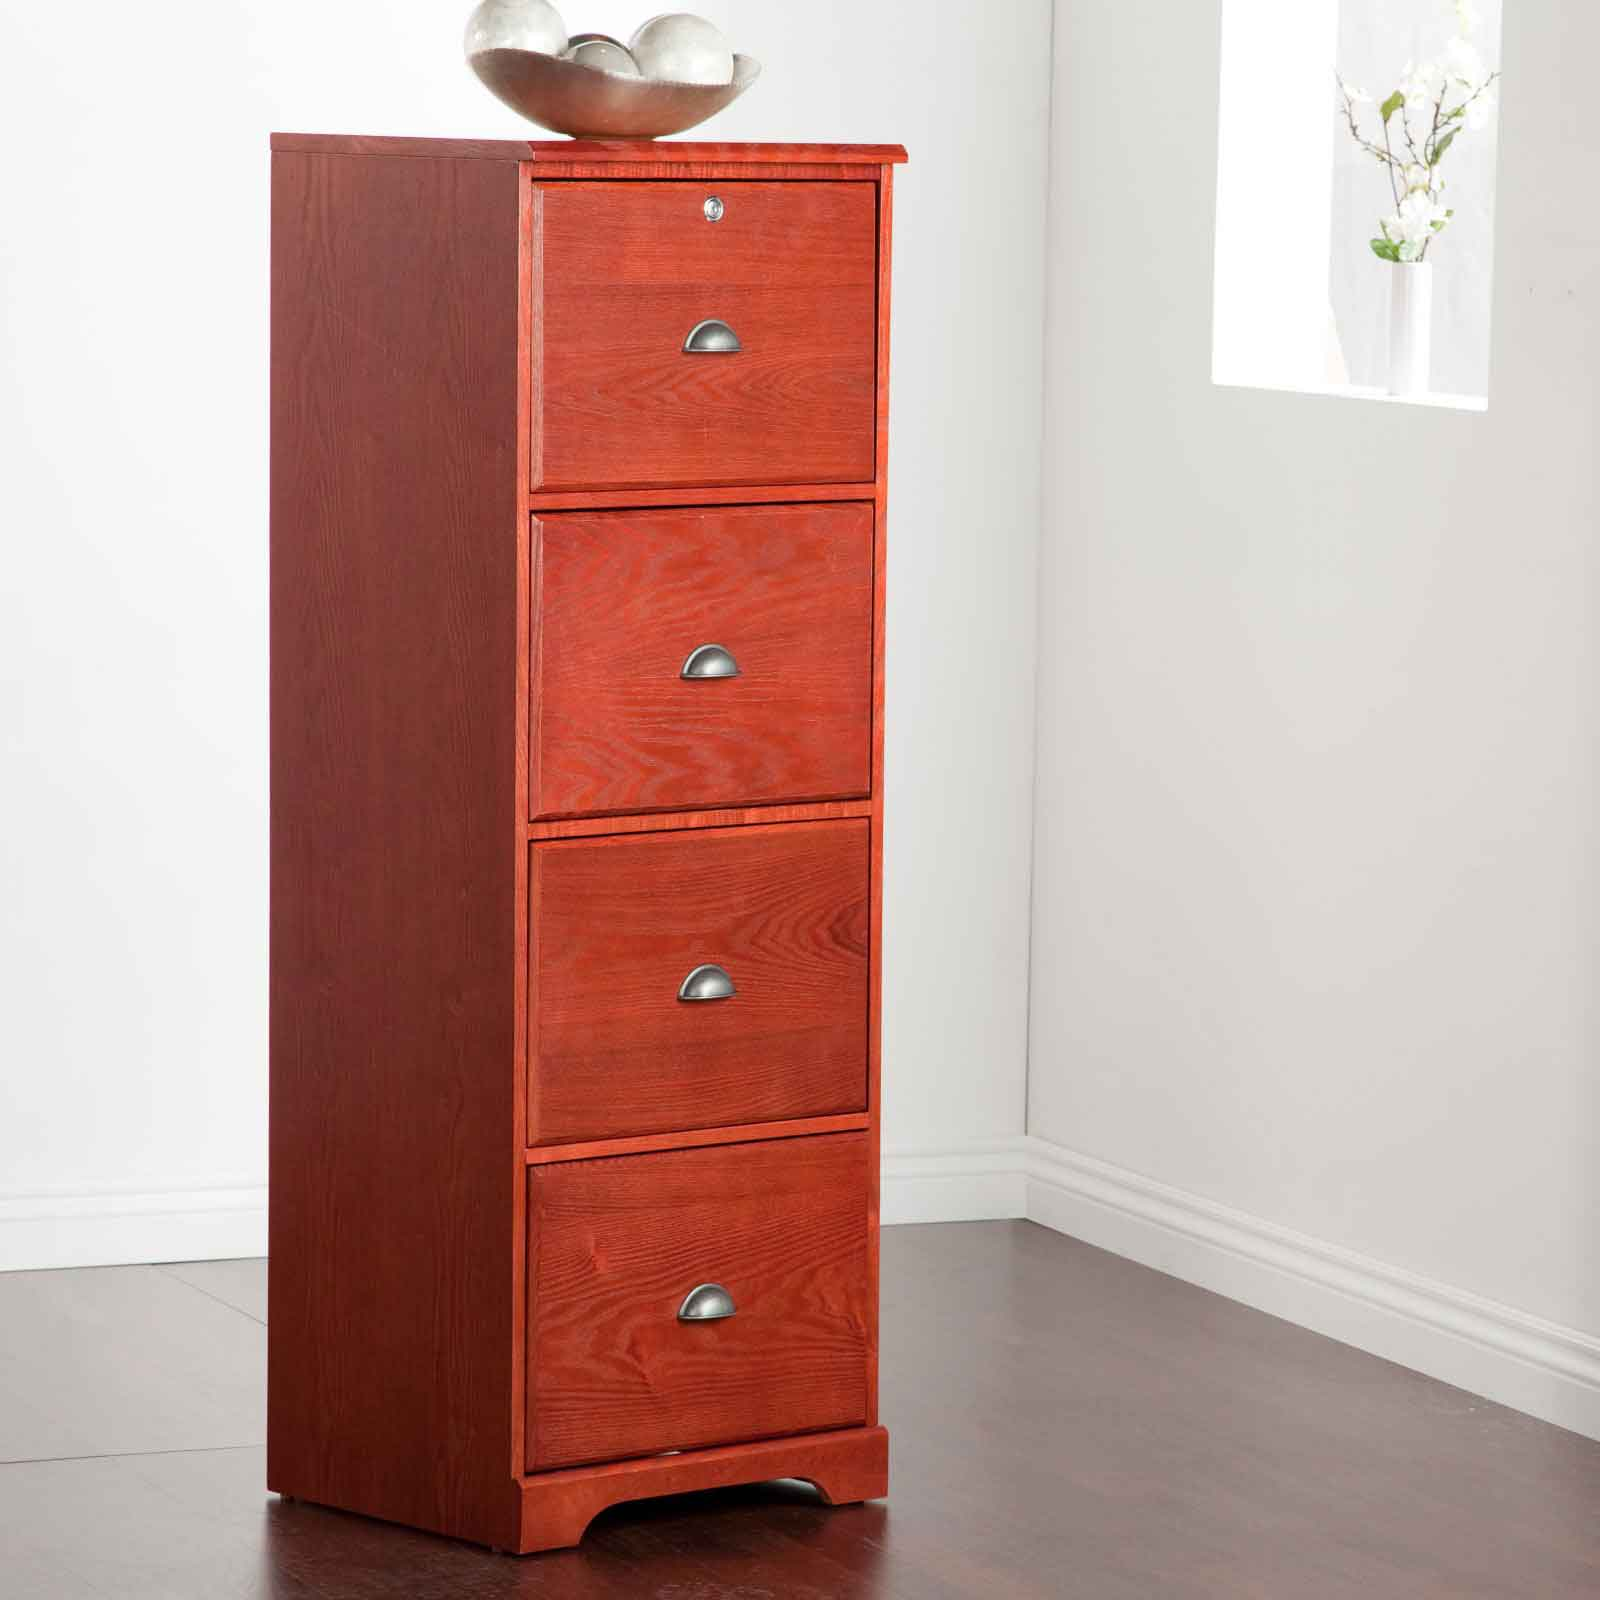 Decorative Kitchen Cabinets Decorative Filing Cabinets For Both Style And Function